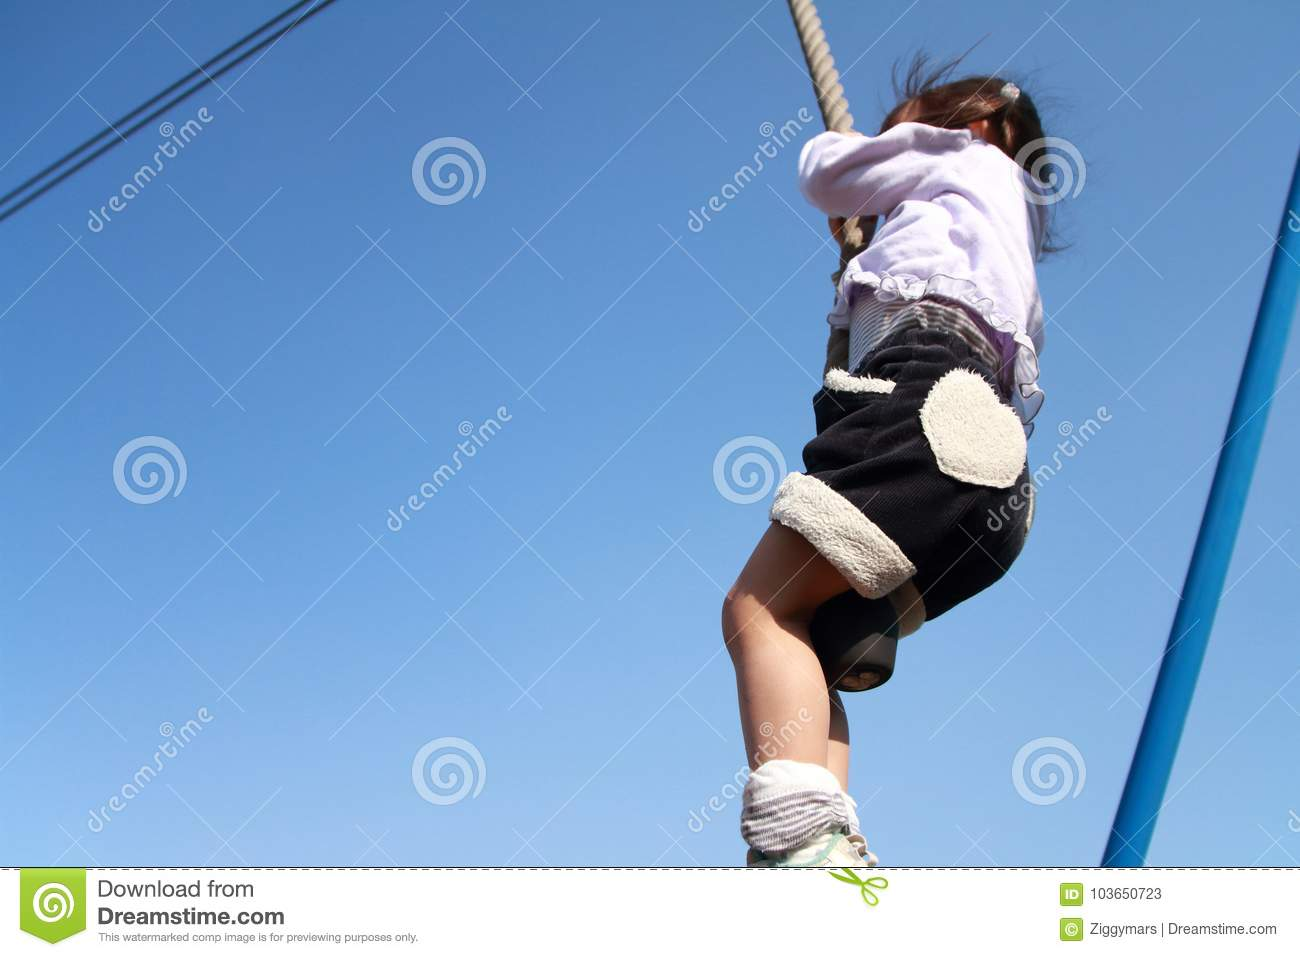 Japanese Girl Playing With Flying Fox Stock Image - Image of